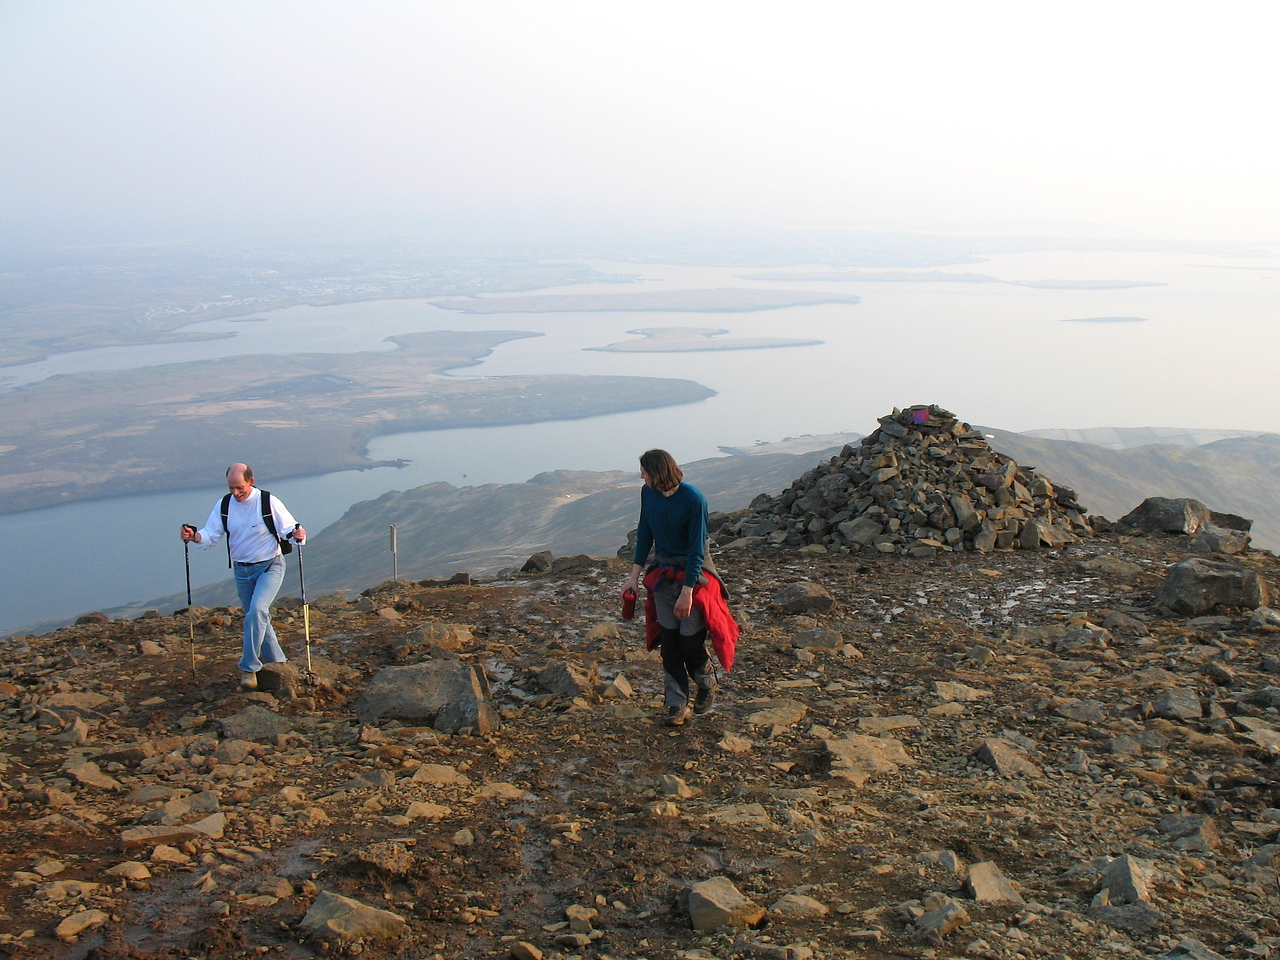 Dale and Steve arrive at the summit, Rekjavík can be seen in the background through the haze.